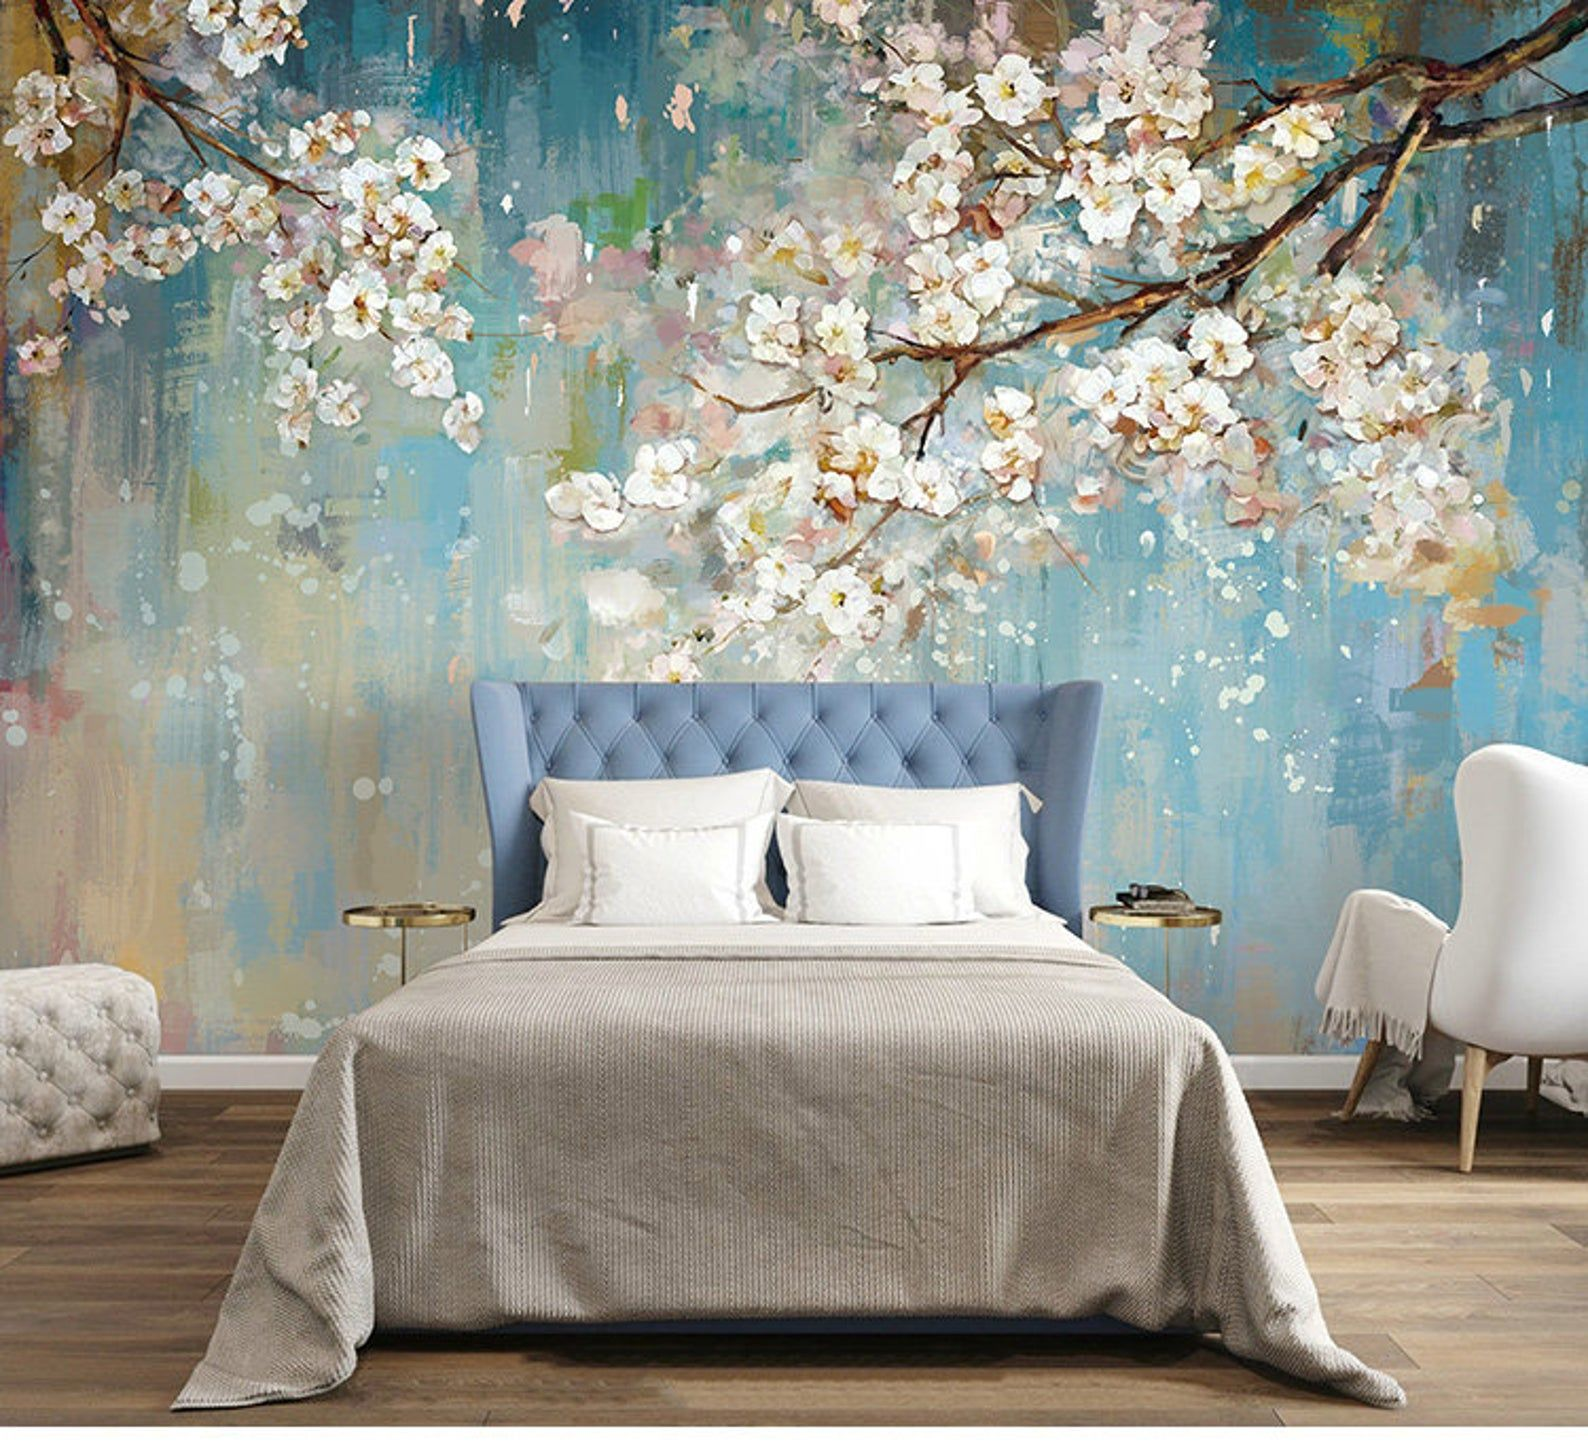 Fabulous Oil Painting Wallpaper Wall Mural, Sakura Tree Wall Art for Bedroom/Living Room Wall Murals, Blooming Floral Wallpaper Wall Mural